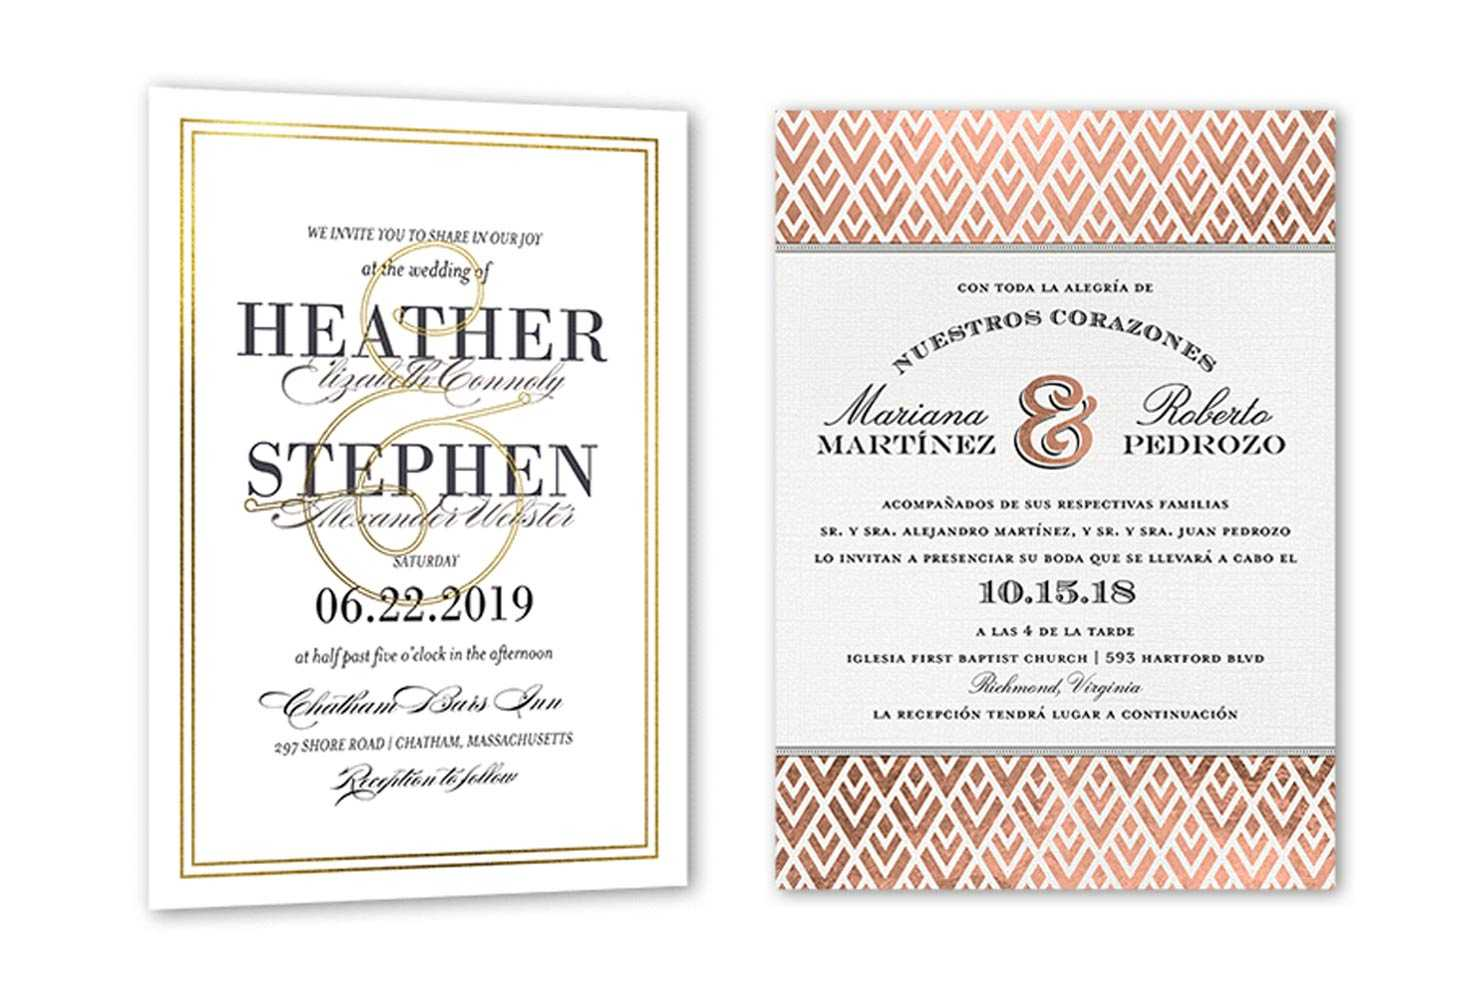 35+ Wedding Invitation Wording Examples 2020 | Shutterfly For Church Wedding Invitation Card Template